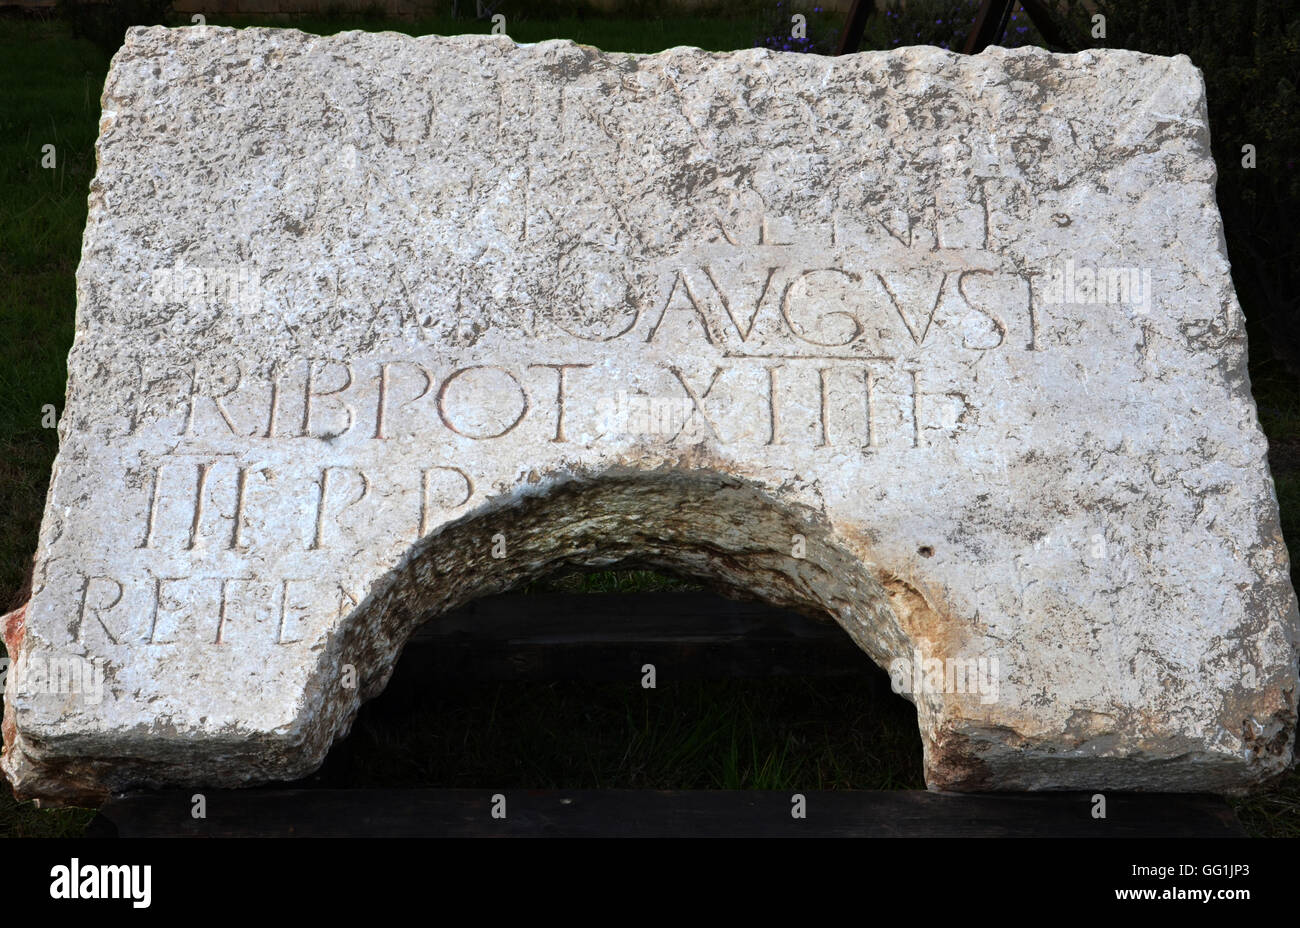 5881. Roman commemorative inscription dedicated by the 10th Legion Fretensis to Emperor Hadrian, dating c. 1st. - Stock Image